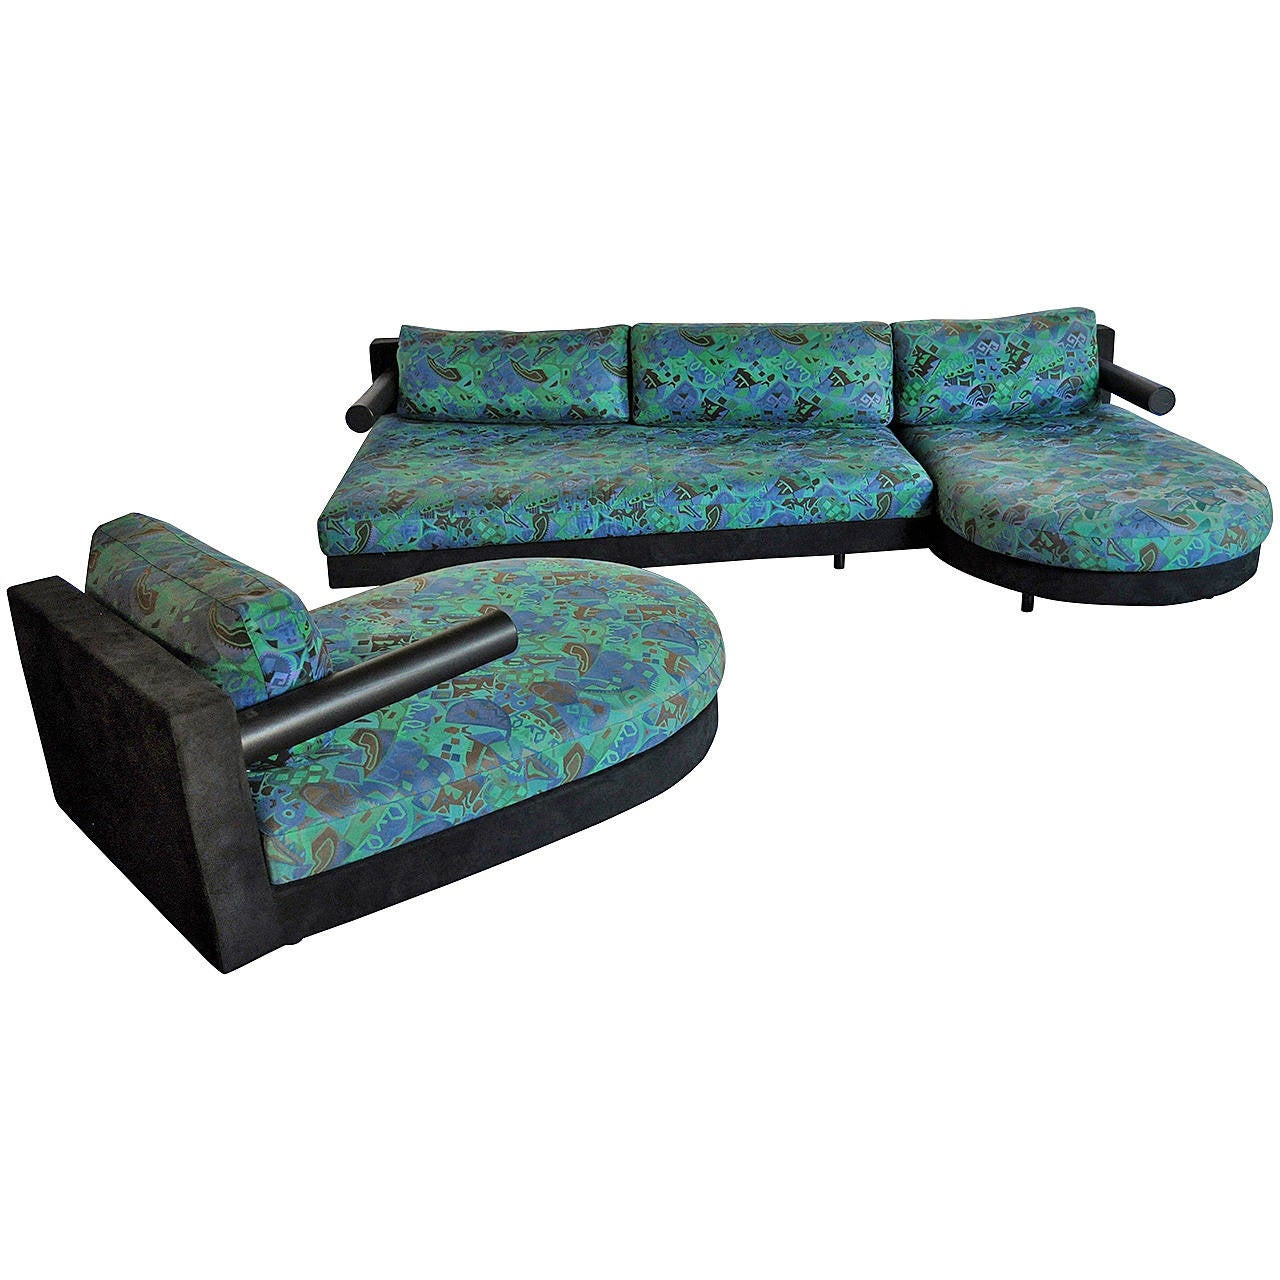 B Amp B Italia Sity Modular Sectional Sofa And Chaise Lounge